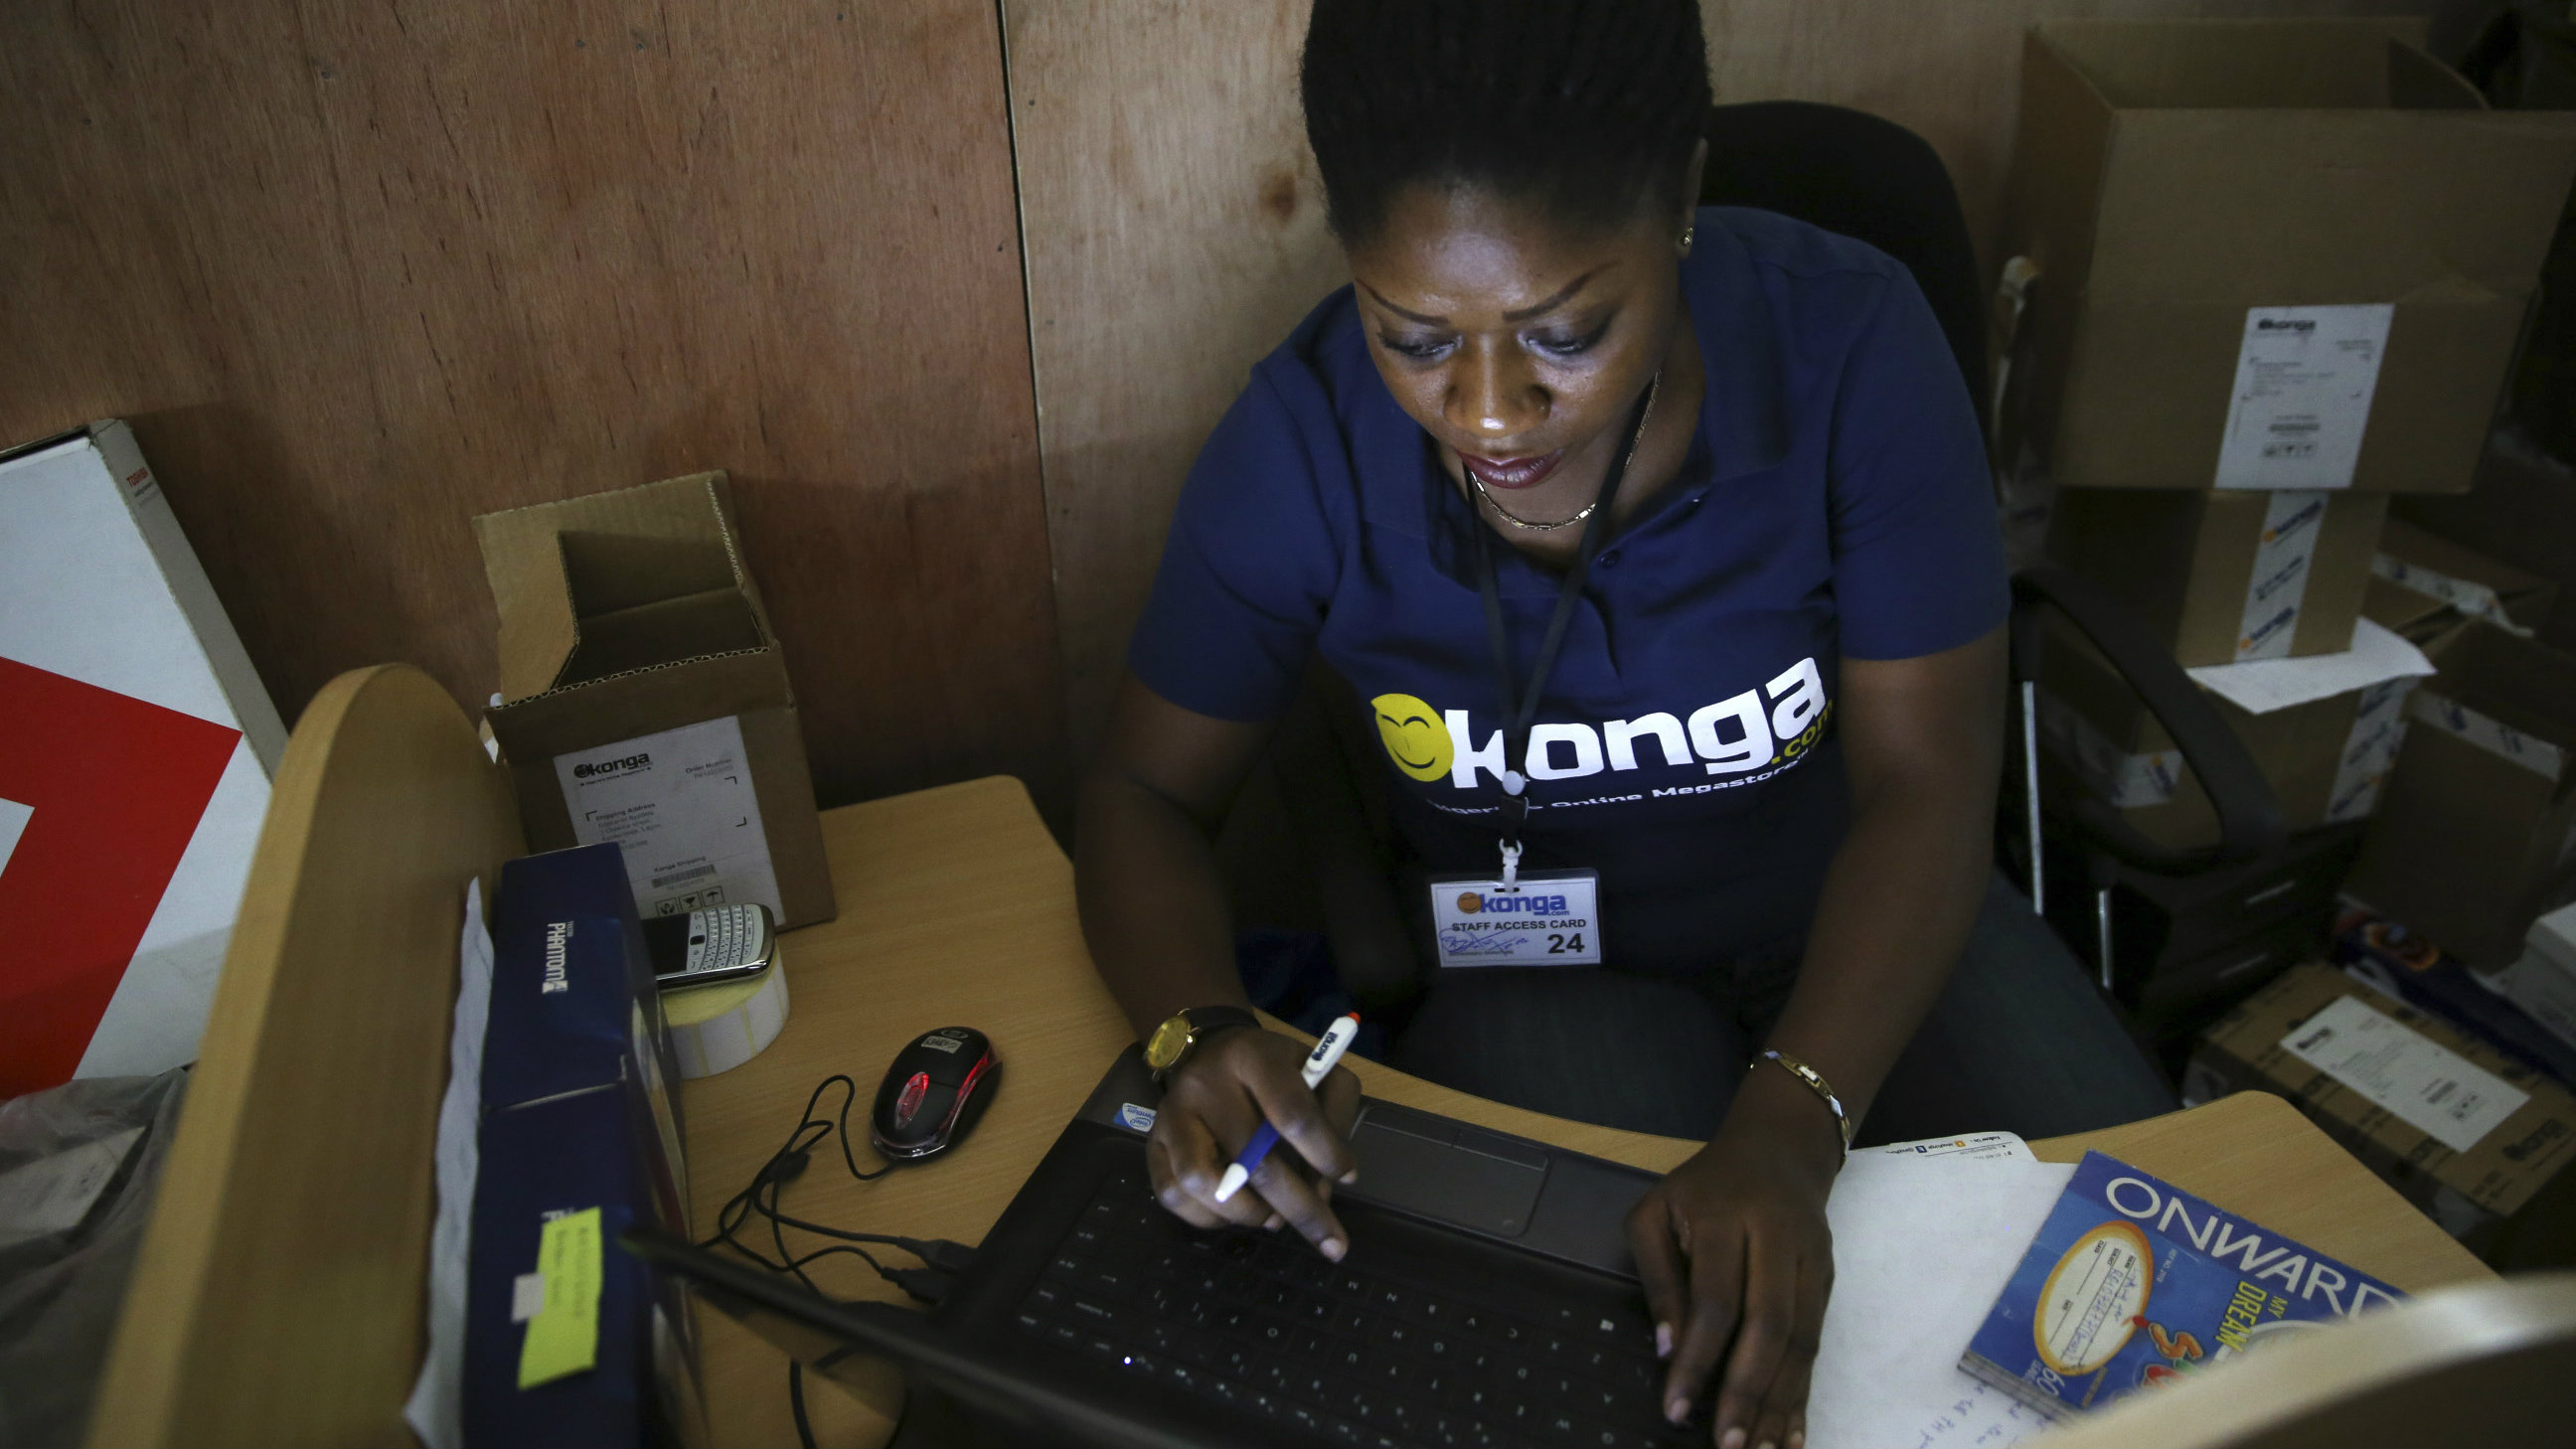 A staff inputs data into a computer at the warehouse of Konga online shopping company in Ilupeju district in Nigeria's commercial capital Lagos September 13, 2013. REUTERS/Akintunde Akinleye(NIGERIA - Tags: BUSINESS EMPLOYMENT)